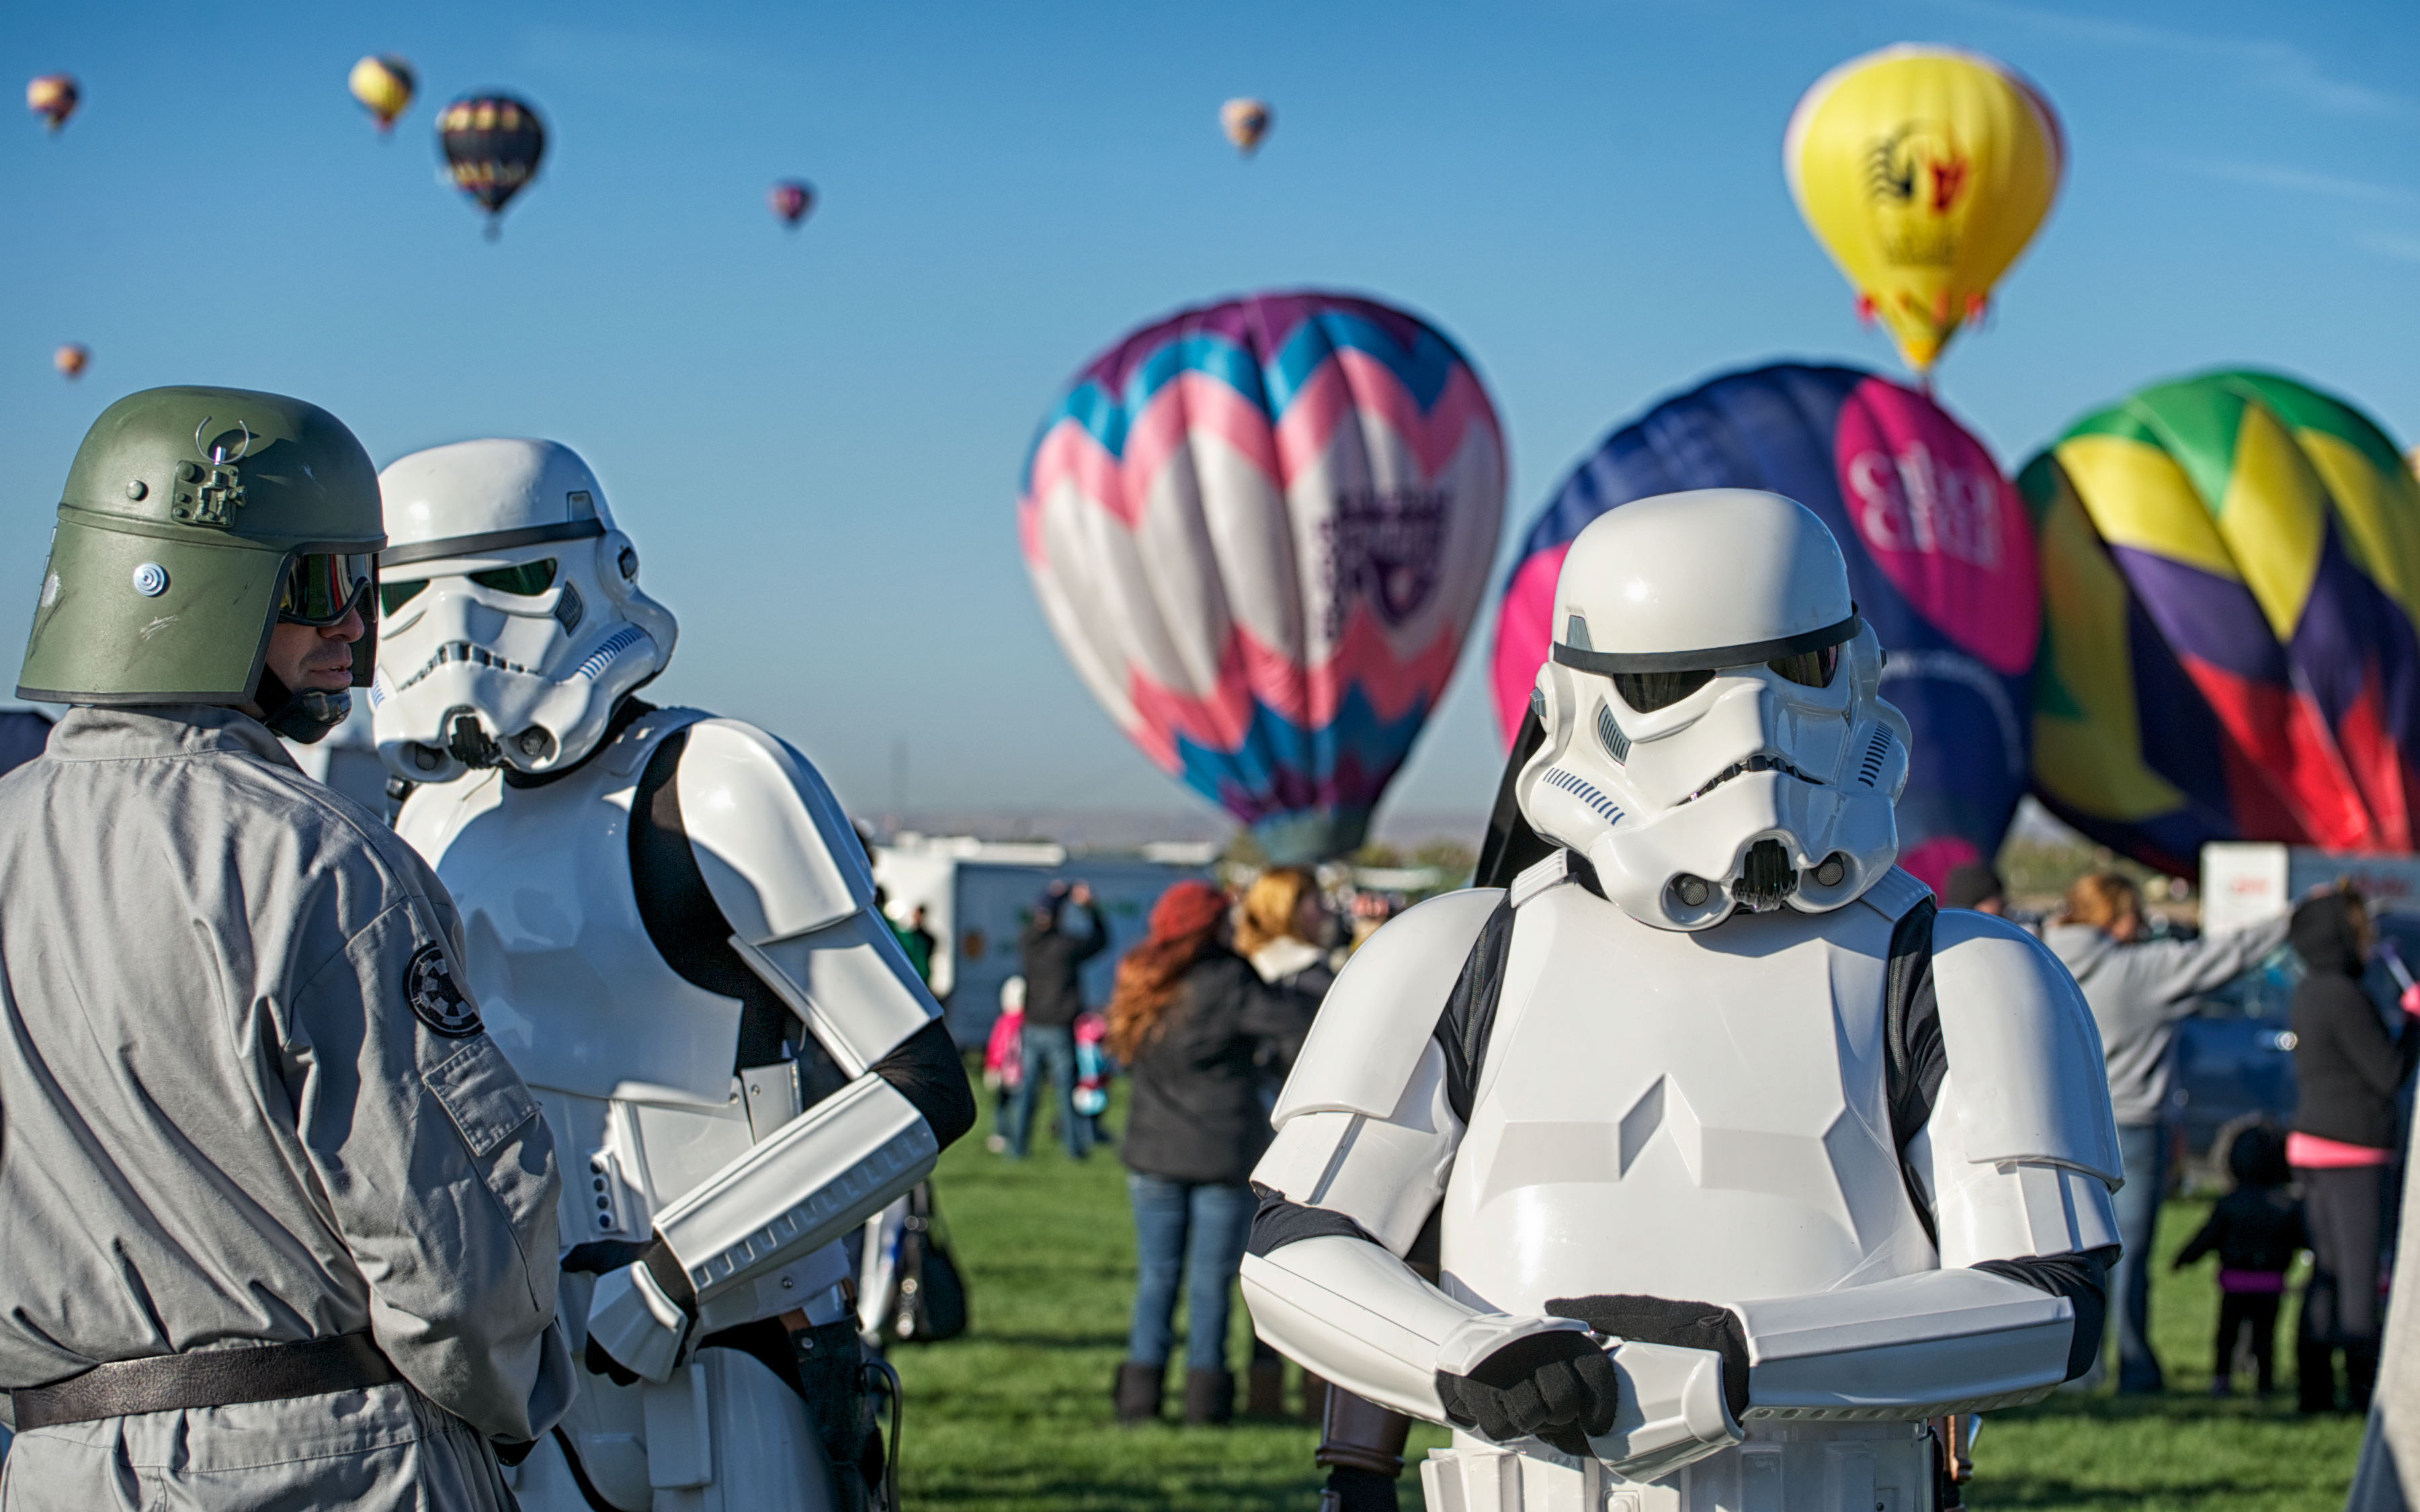 Storm Troopers with several hot air balloons in the background at the Albuquerque International Hot Air Balloon Fiesta, Albuquerque, New Mexico.